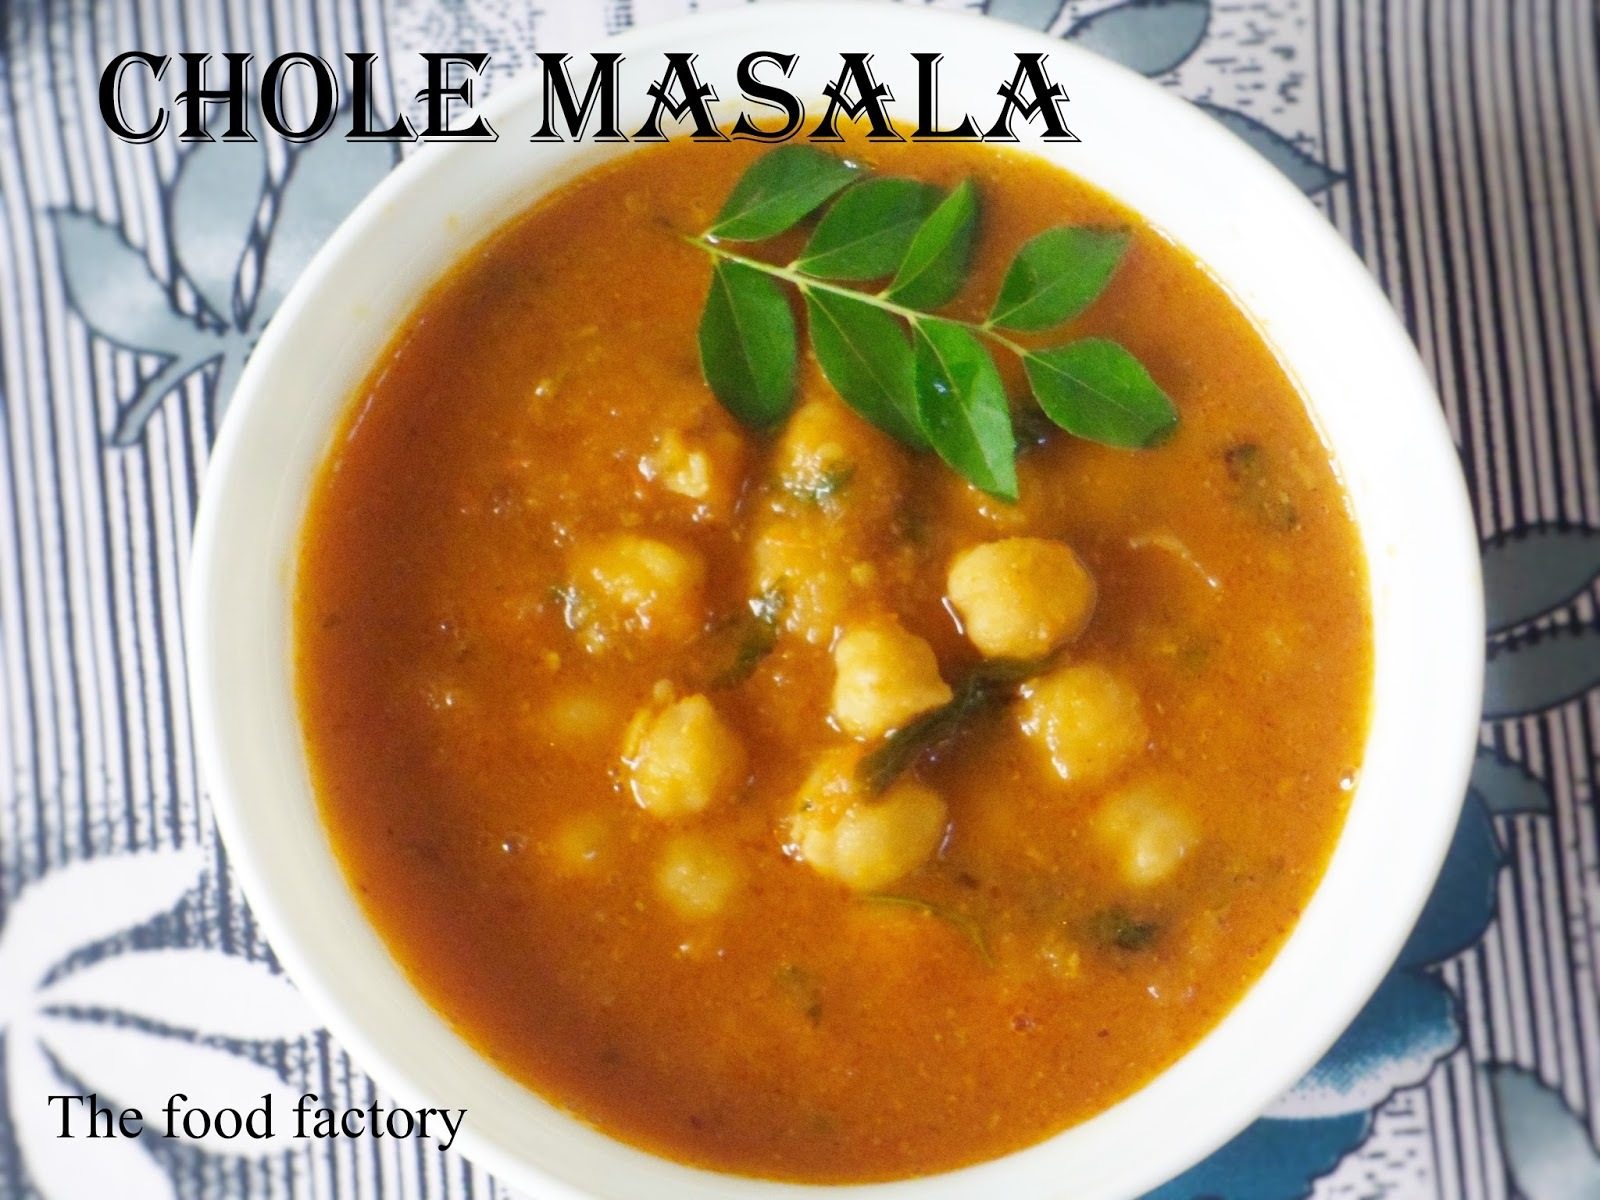 Chole masala (chickpeas cooked with onions and tomato)